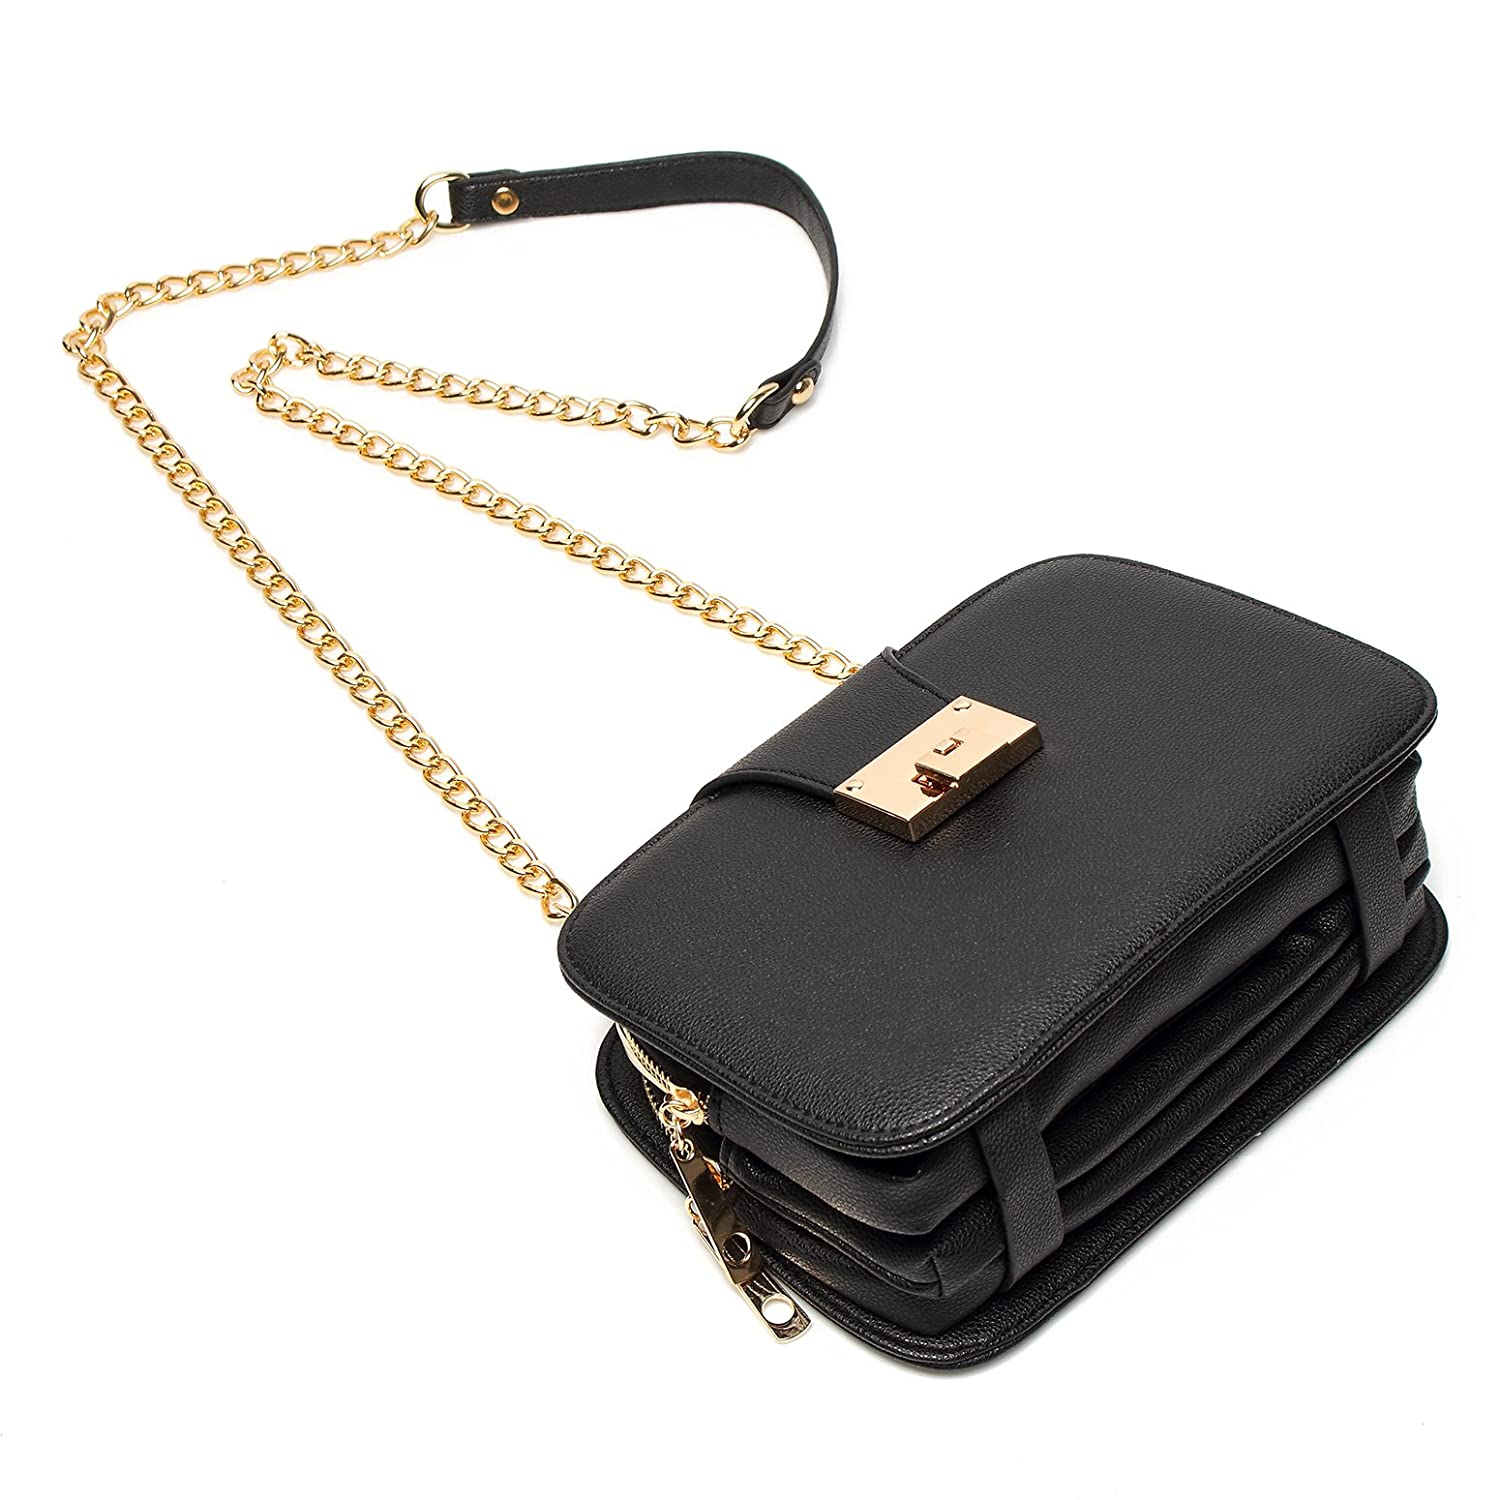 540bdf7aa7f2 Amazon.com  Forestfish Ladies  Black PU Leather Shoulder Bag Purse Evening  Clutch Bags Crossbody Bag with long Metal Chain Strap(Black)  Clothing